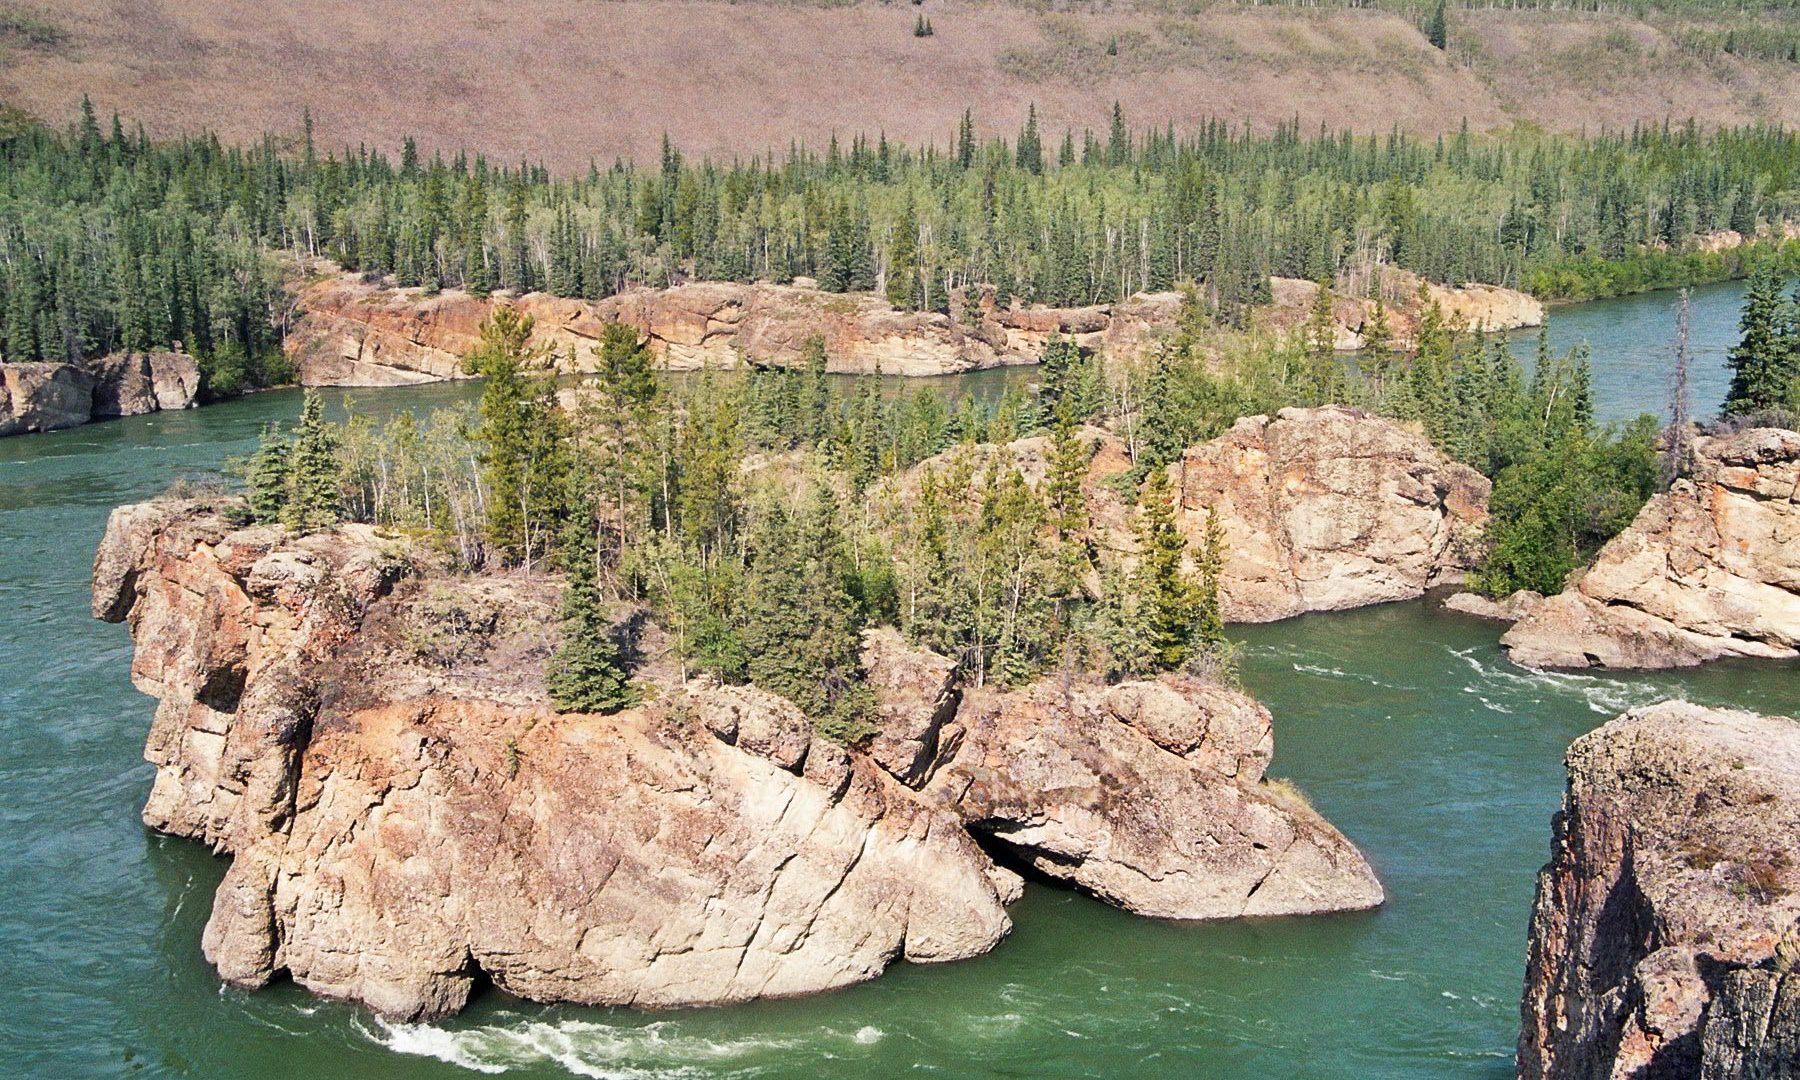 Yukon River: The Classic (Carmacks to Dawson City) - Yukon River